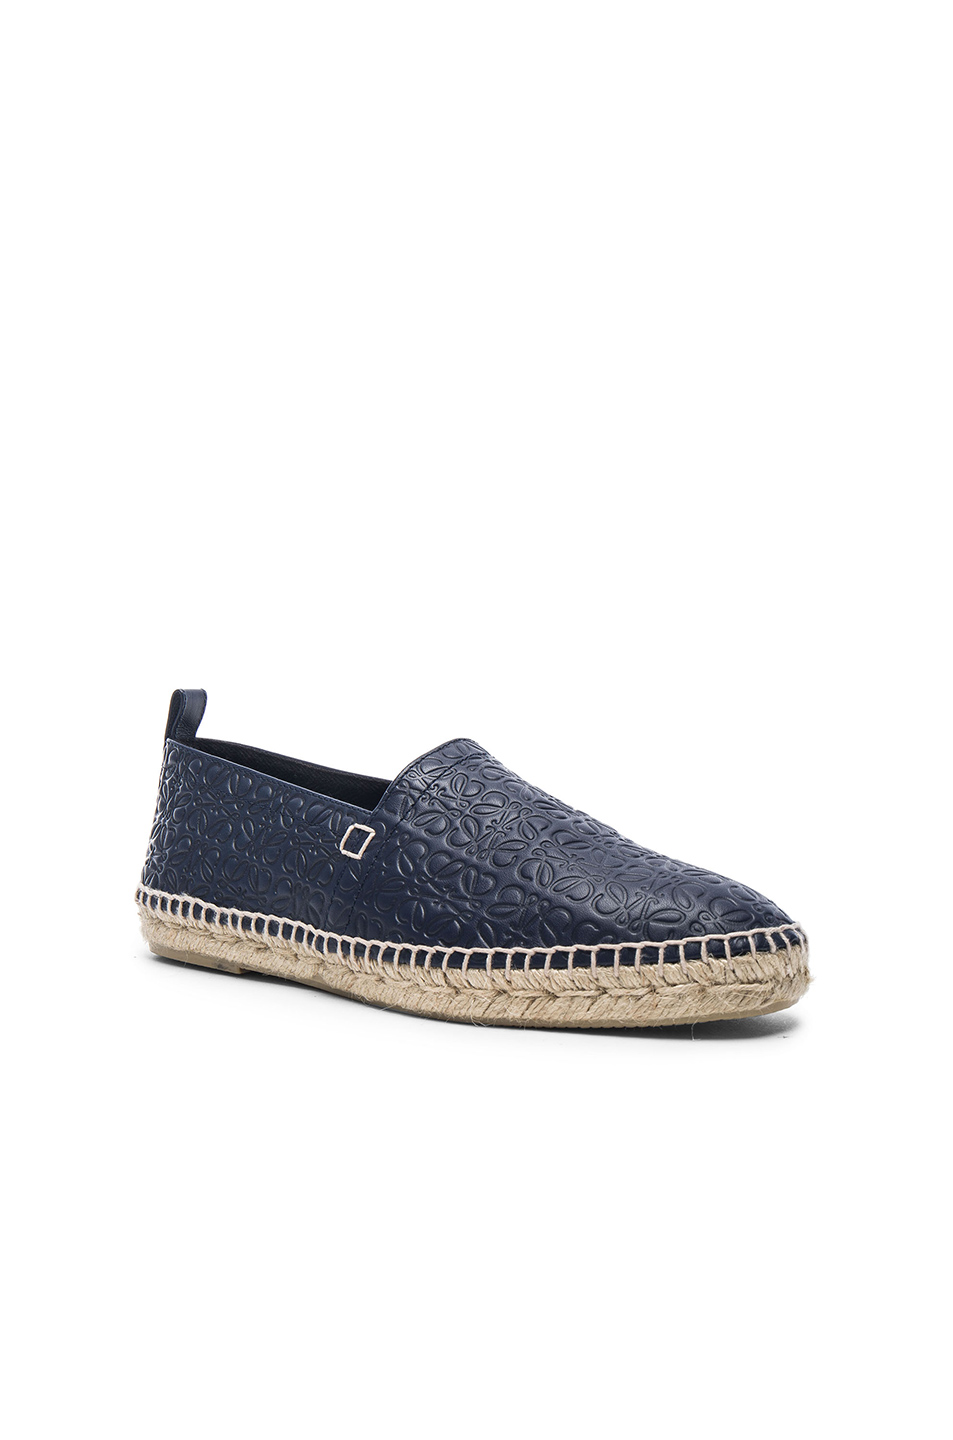 Loewe Anagram Embossed Leather Espadrilles in Blue